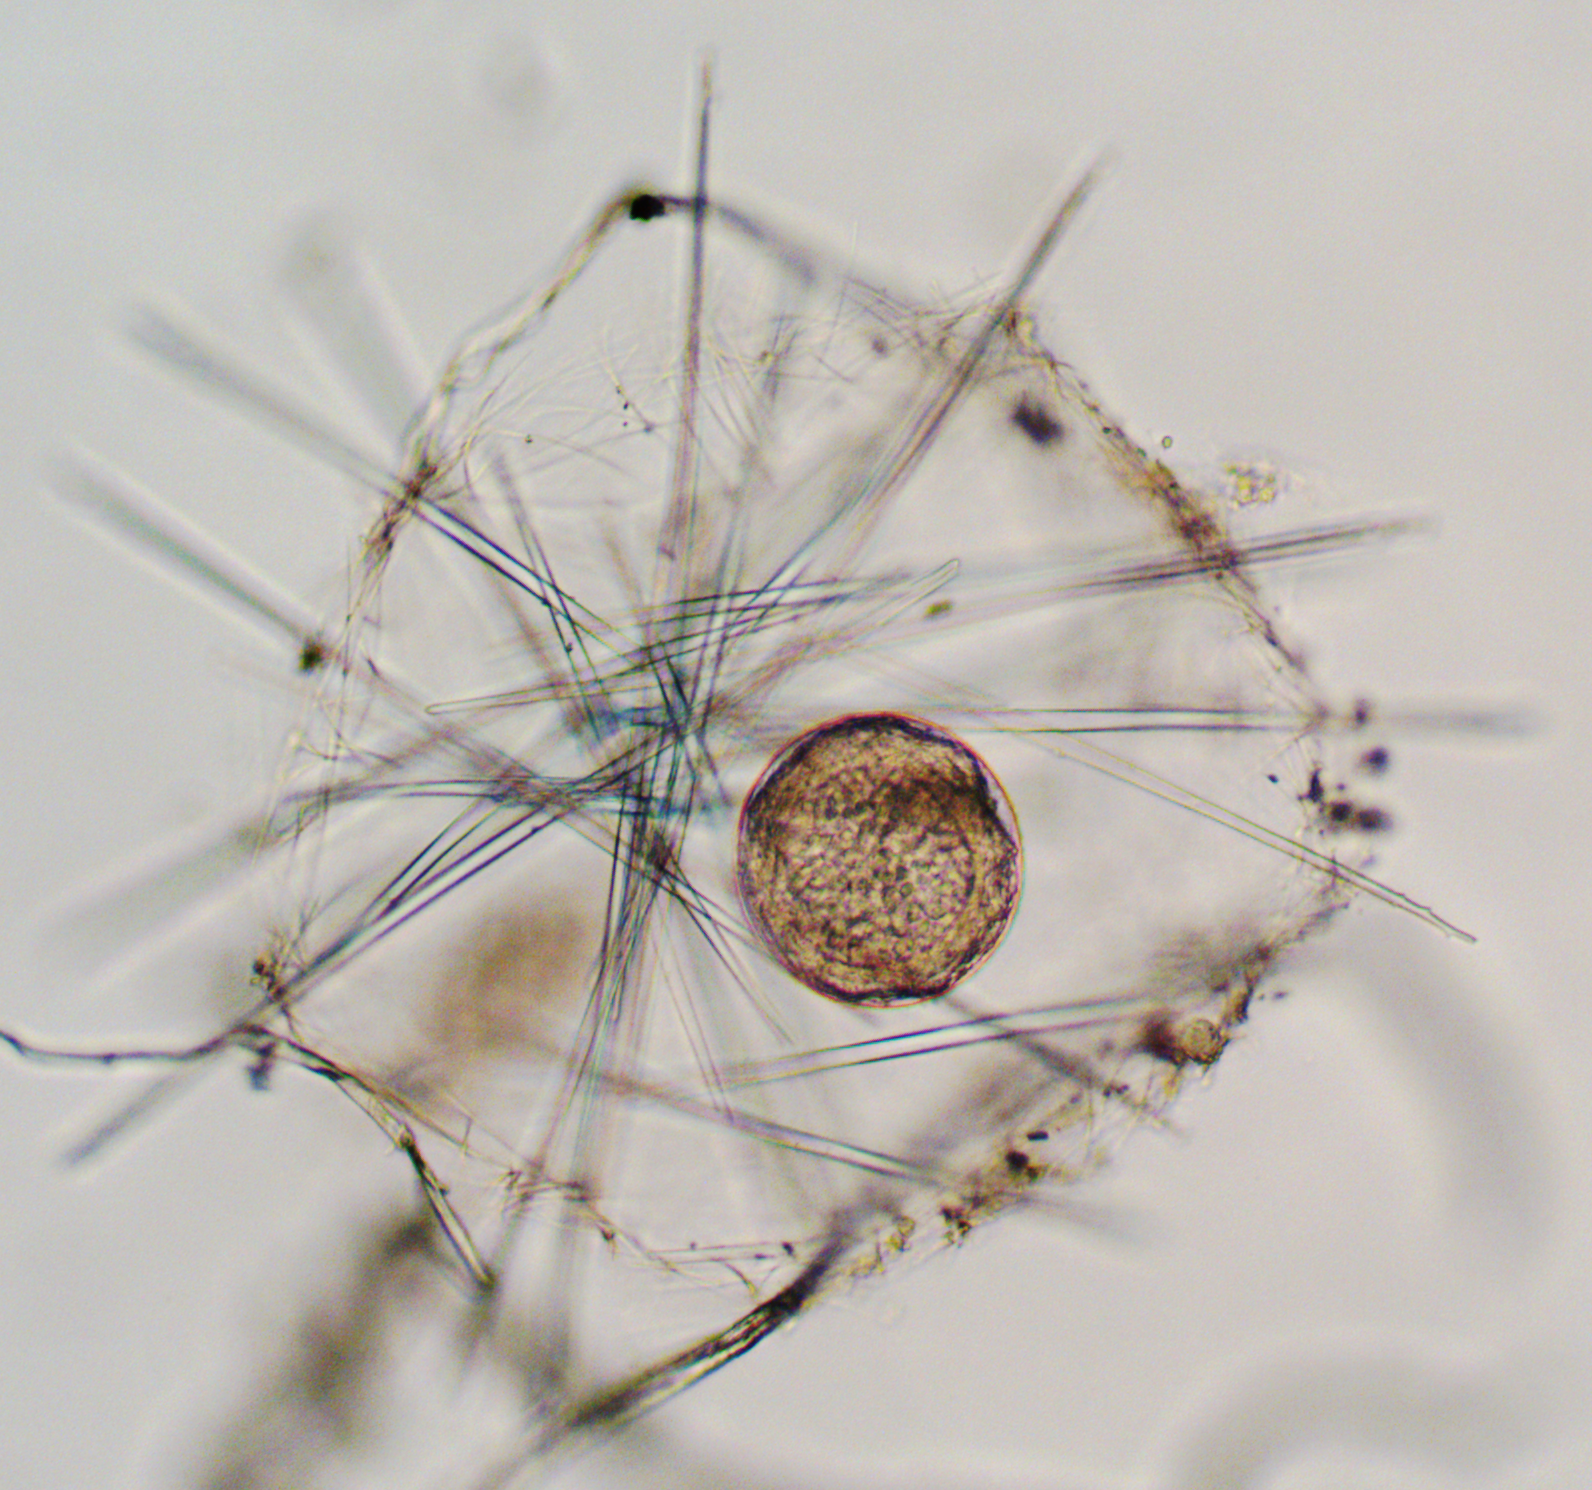 A phaeodarian radiolarian collected off the coast of Northern California